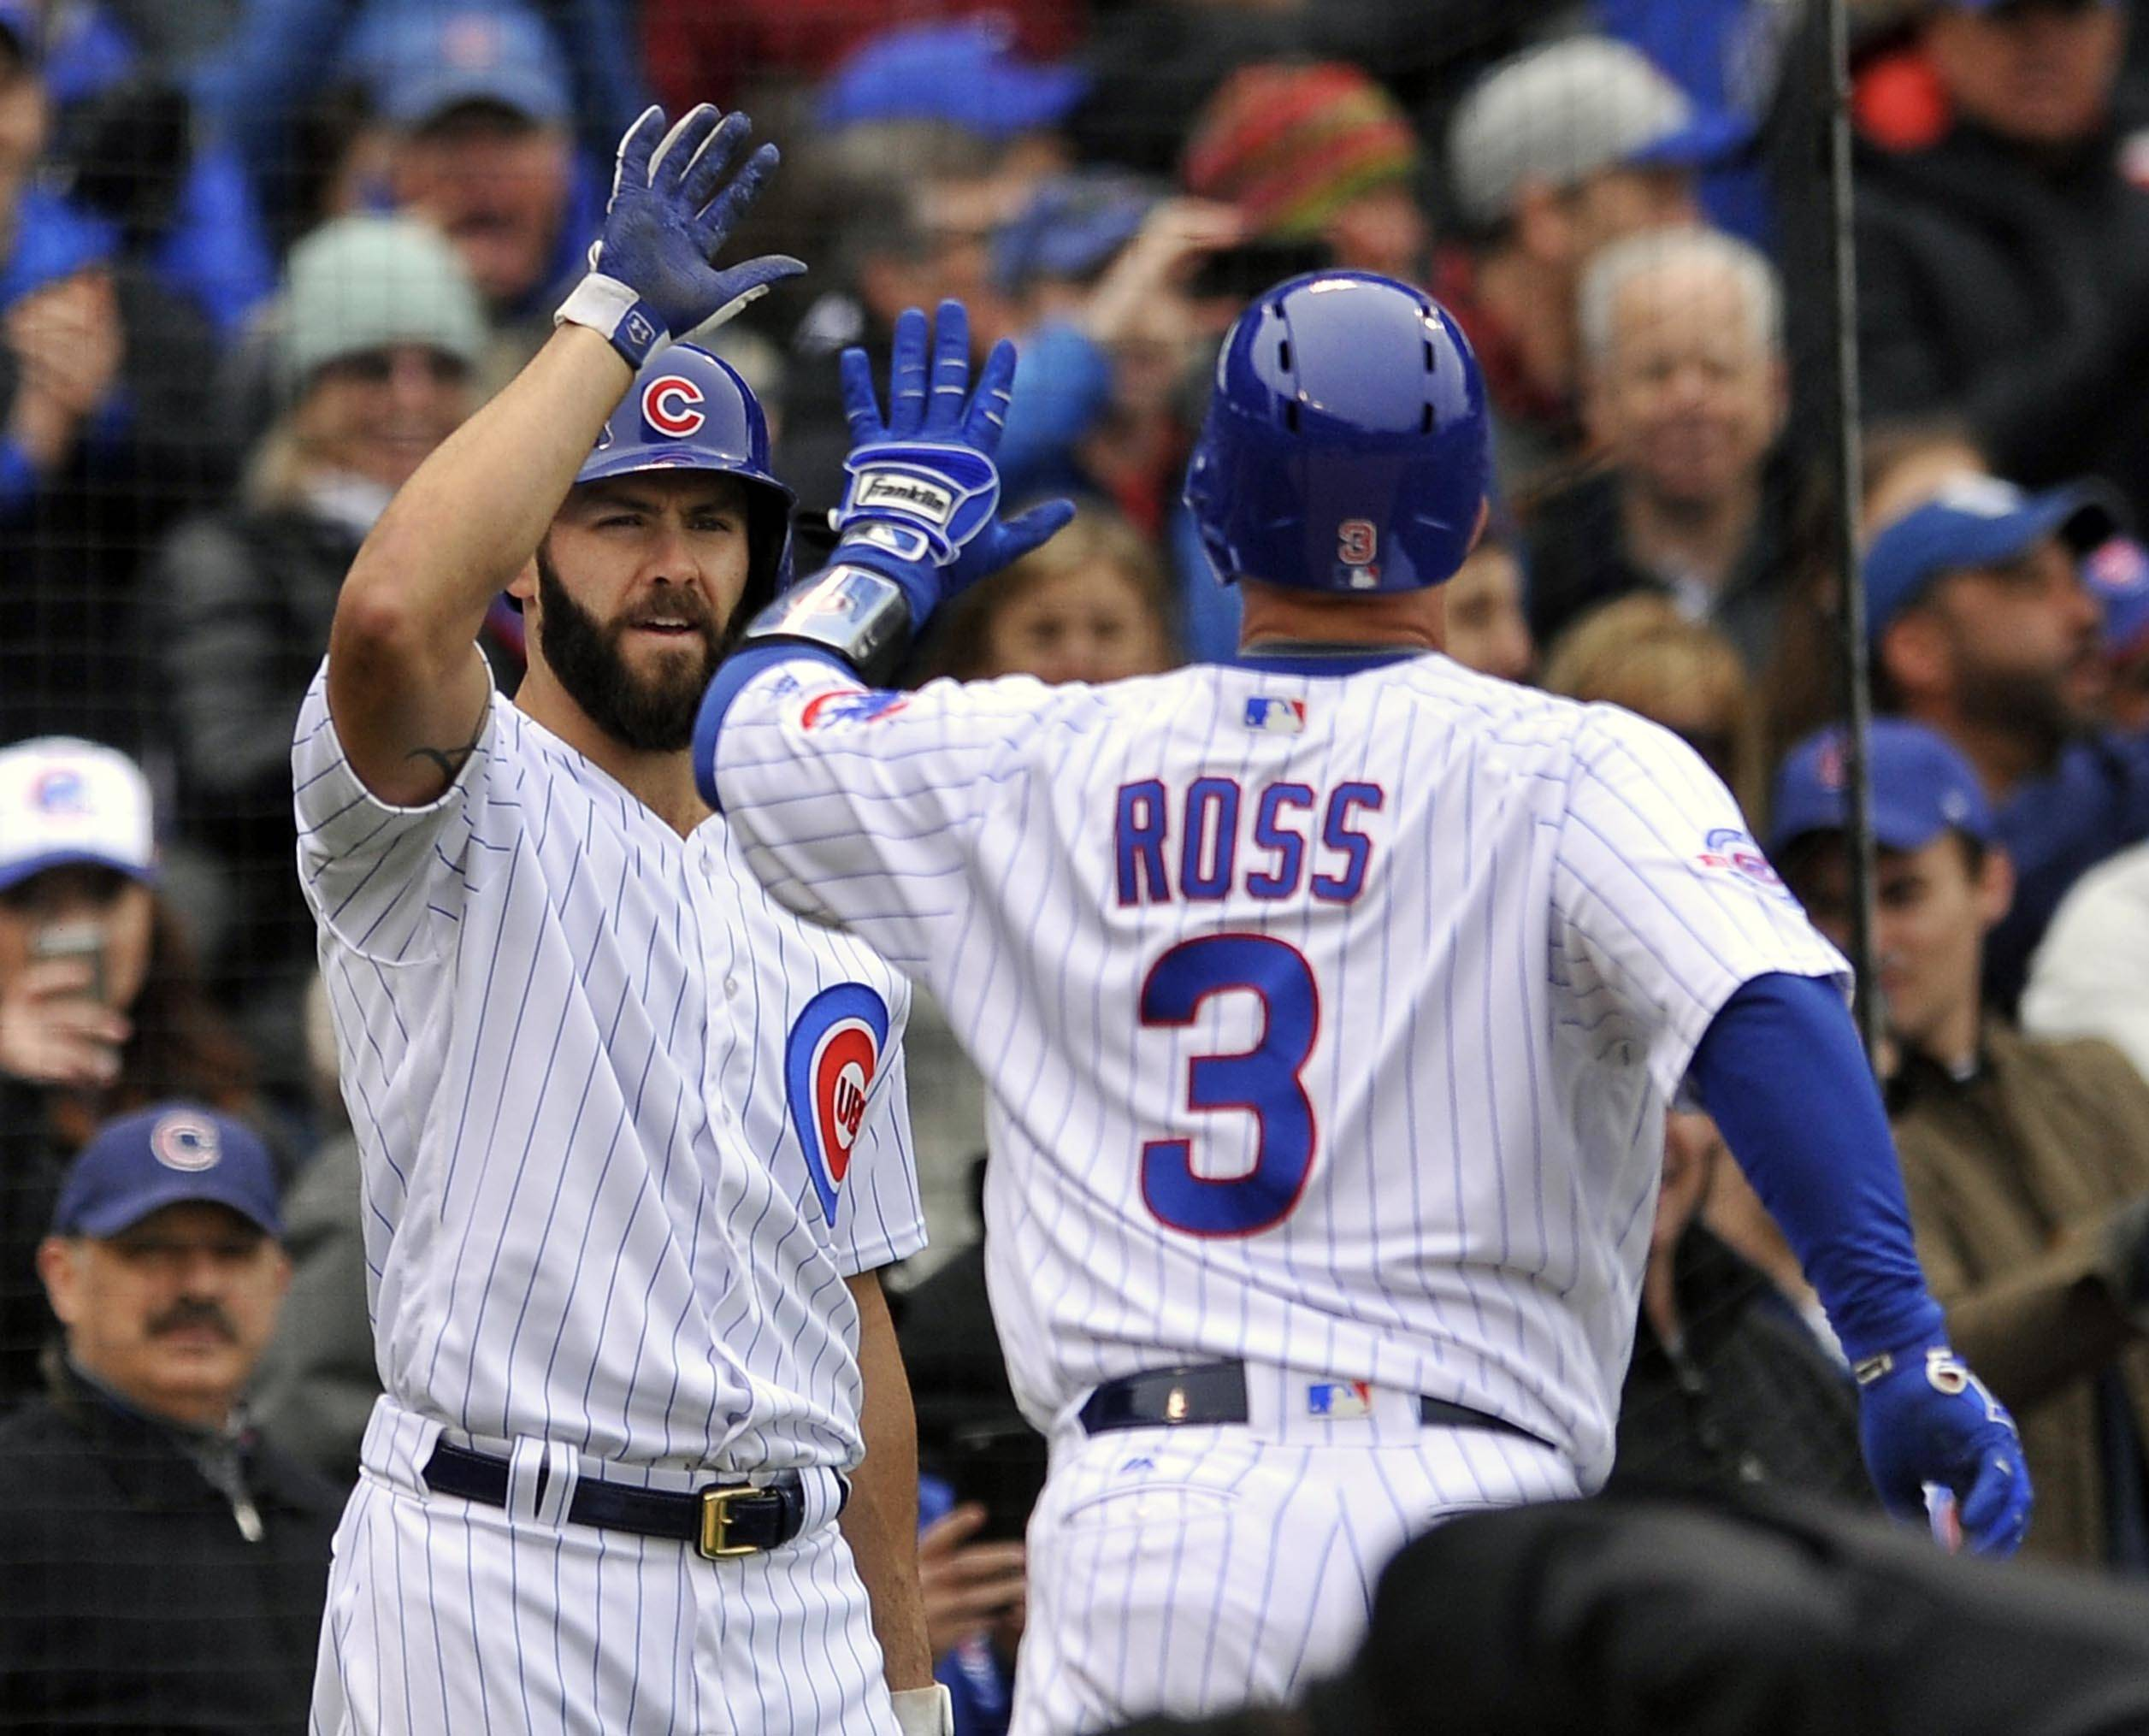 Chicago Cubs catcher David Ross (3) celebrates with teammate Jake Arrieta after hitting a solo home run during the second inning against the Milwaukee Brewers on Thursday in Chicago.